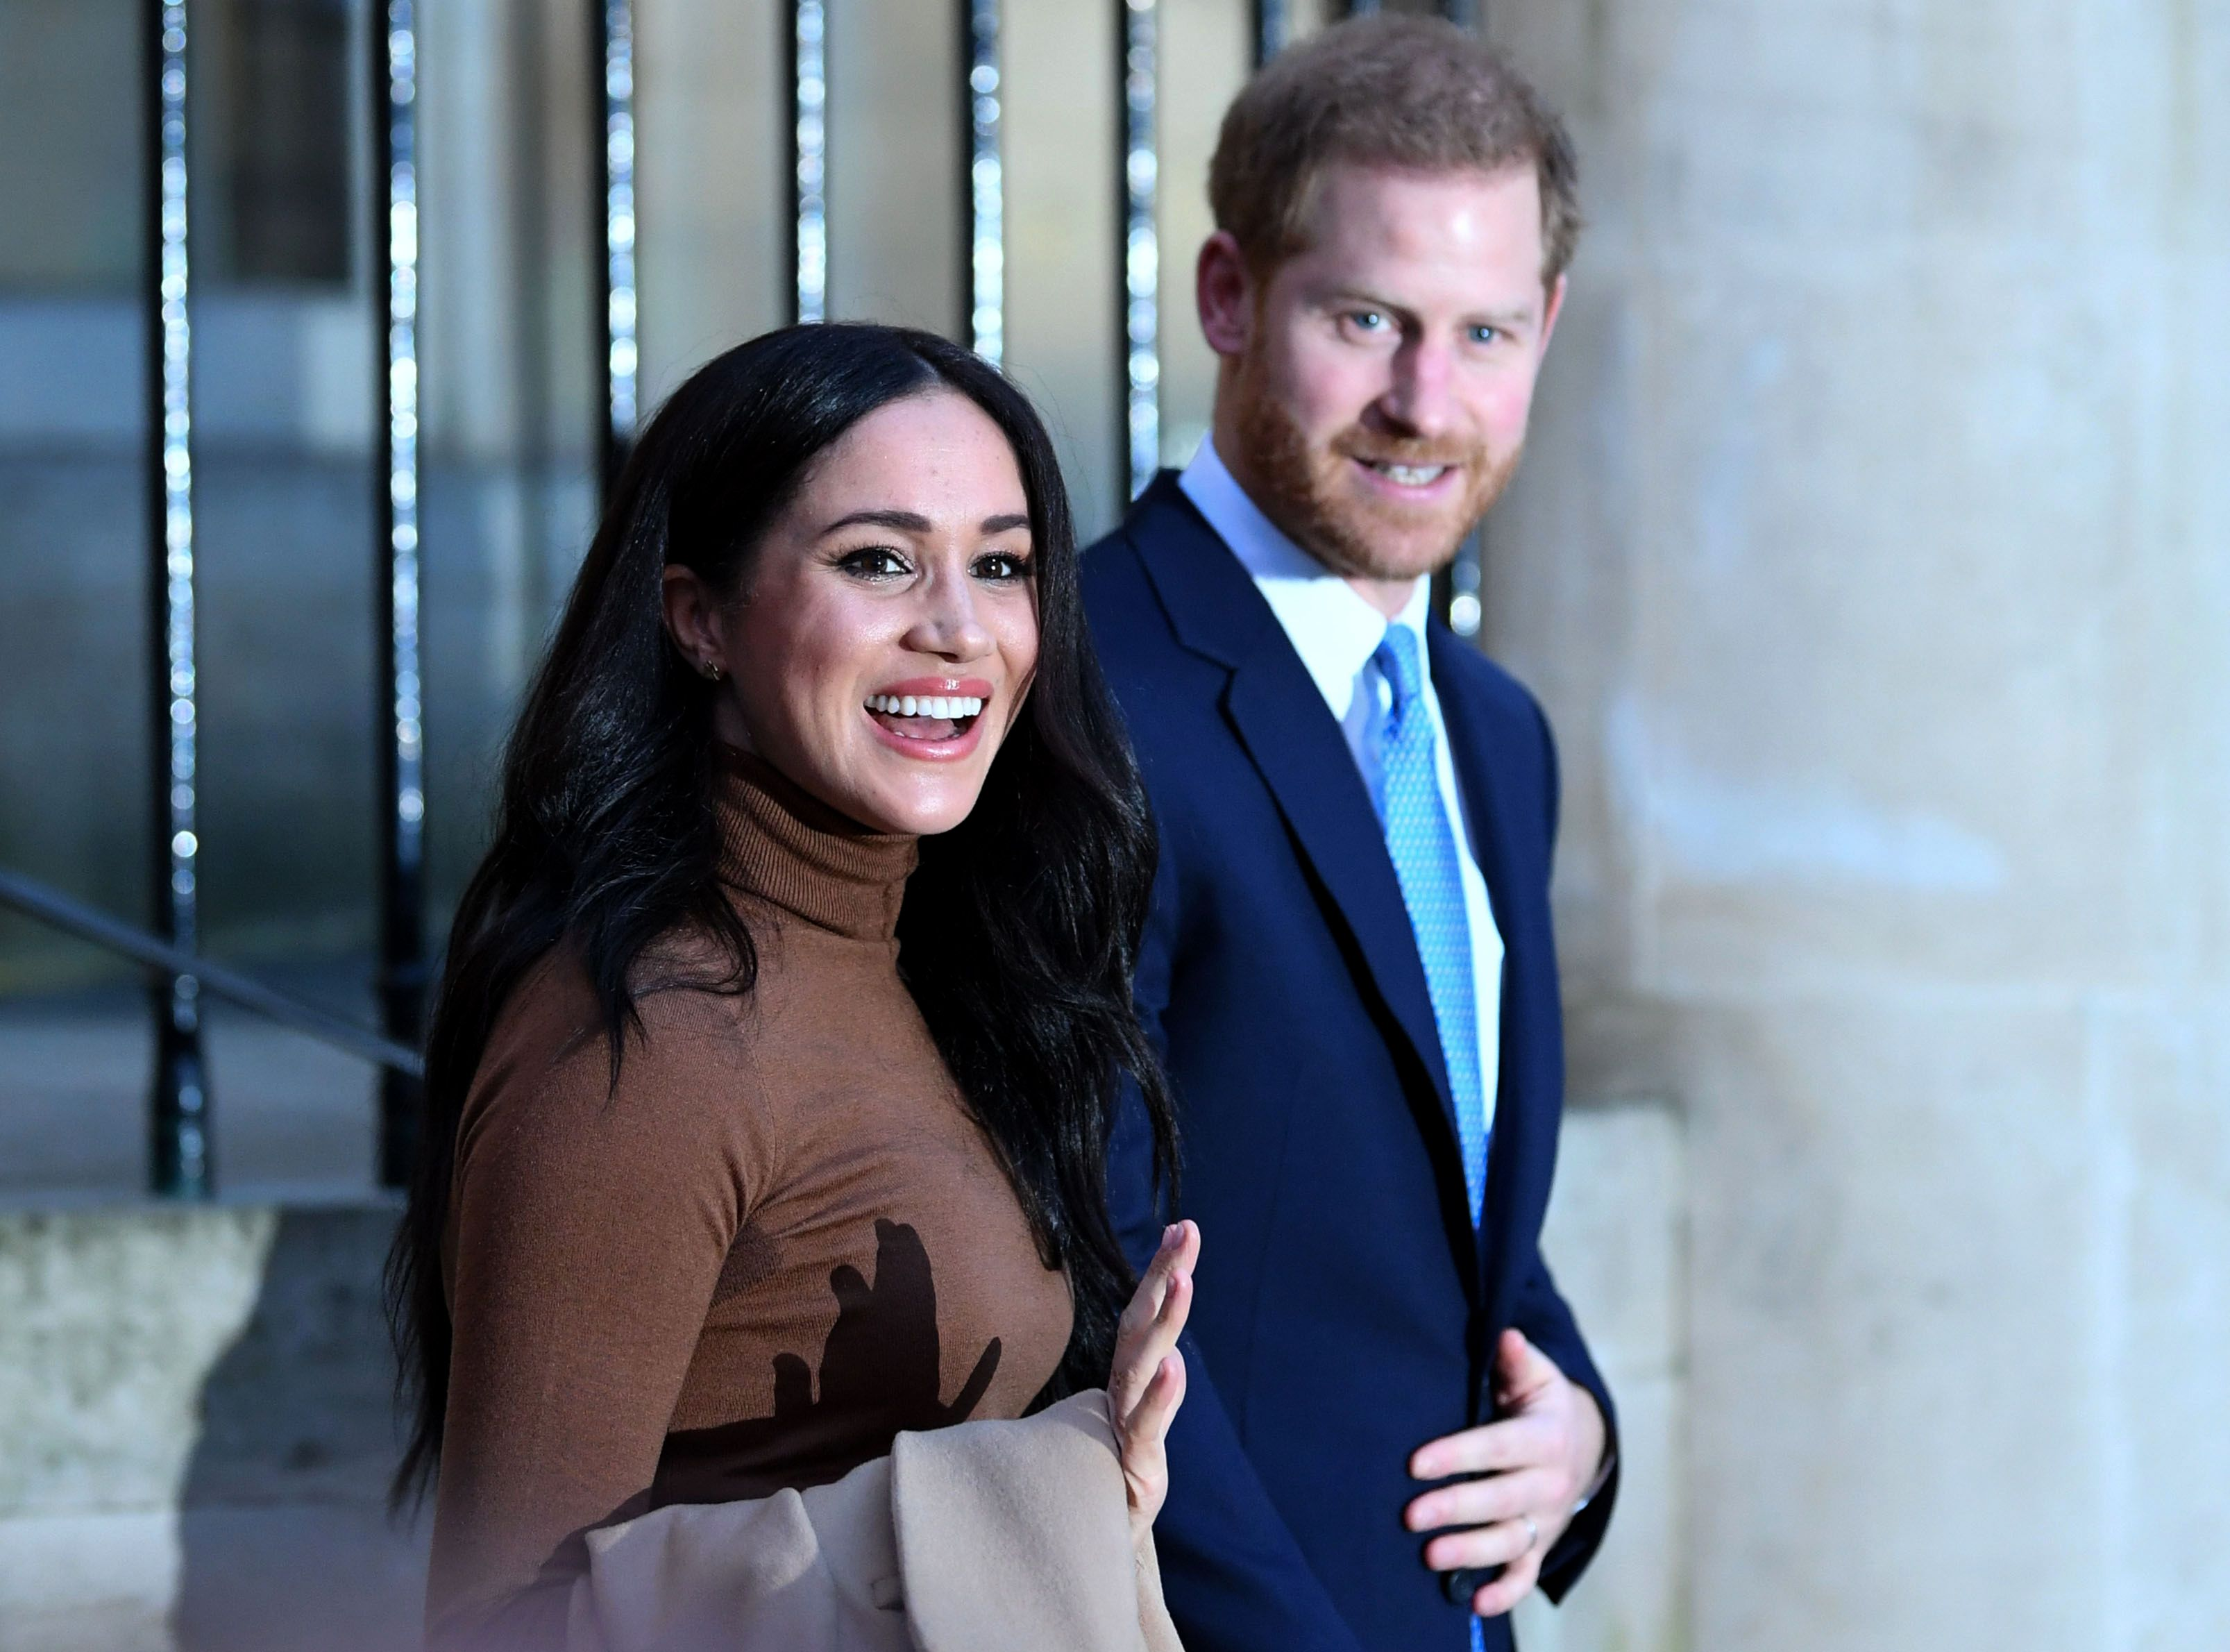 Duchess Meghan and Prince Harry after their visit to Canada House during their stay in Canada, on January 7, 2020, in London, England | Photo: Daniel Leal-Olivas WPA Pool/Getty Images